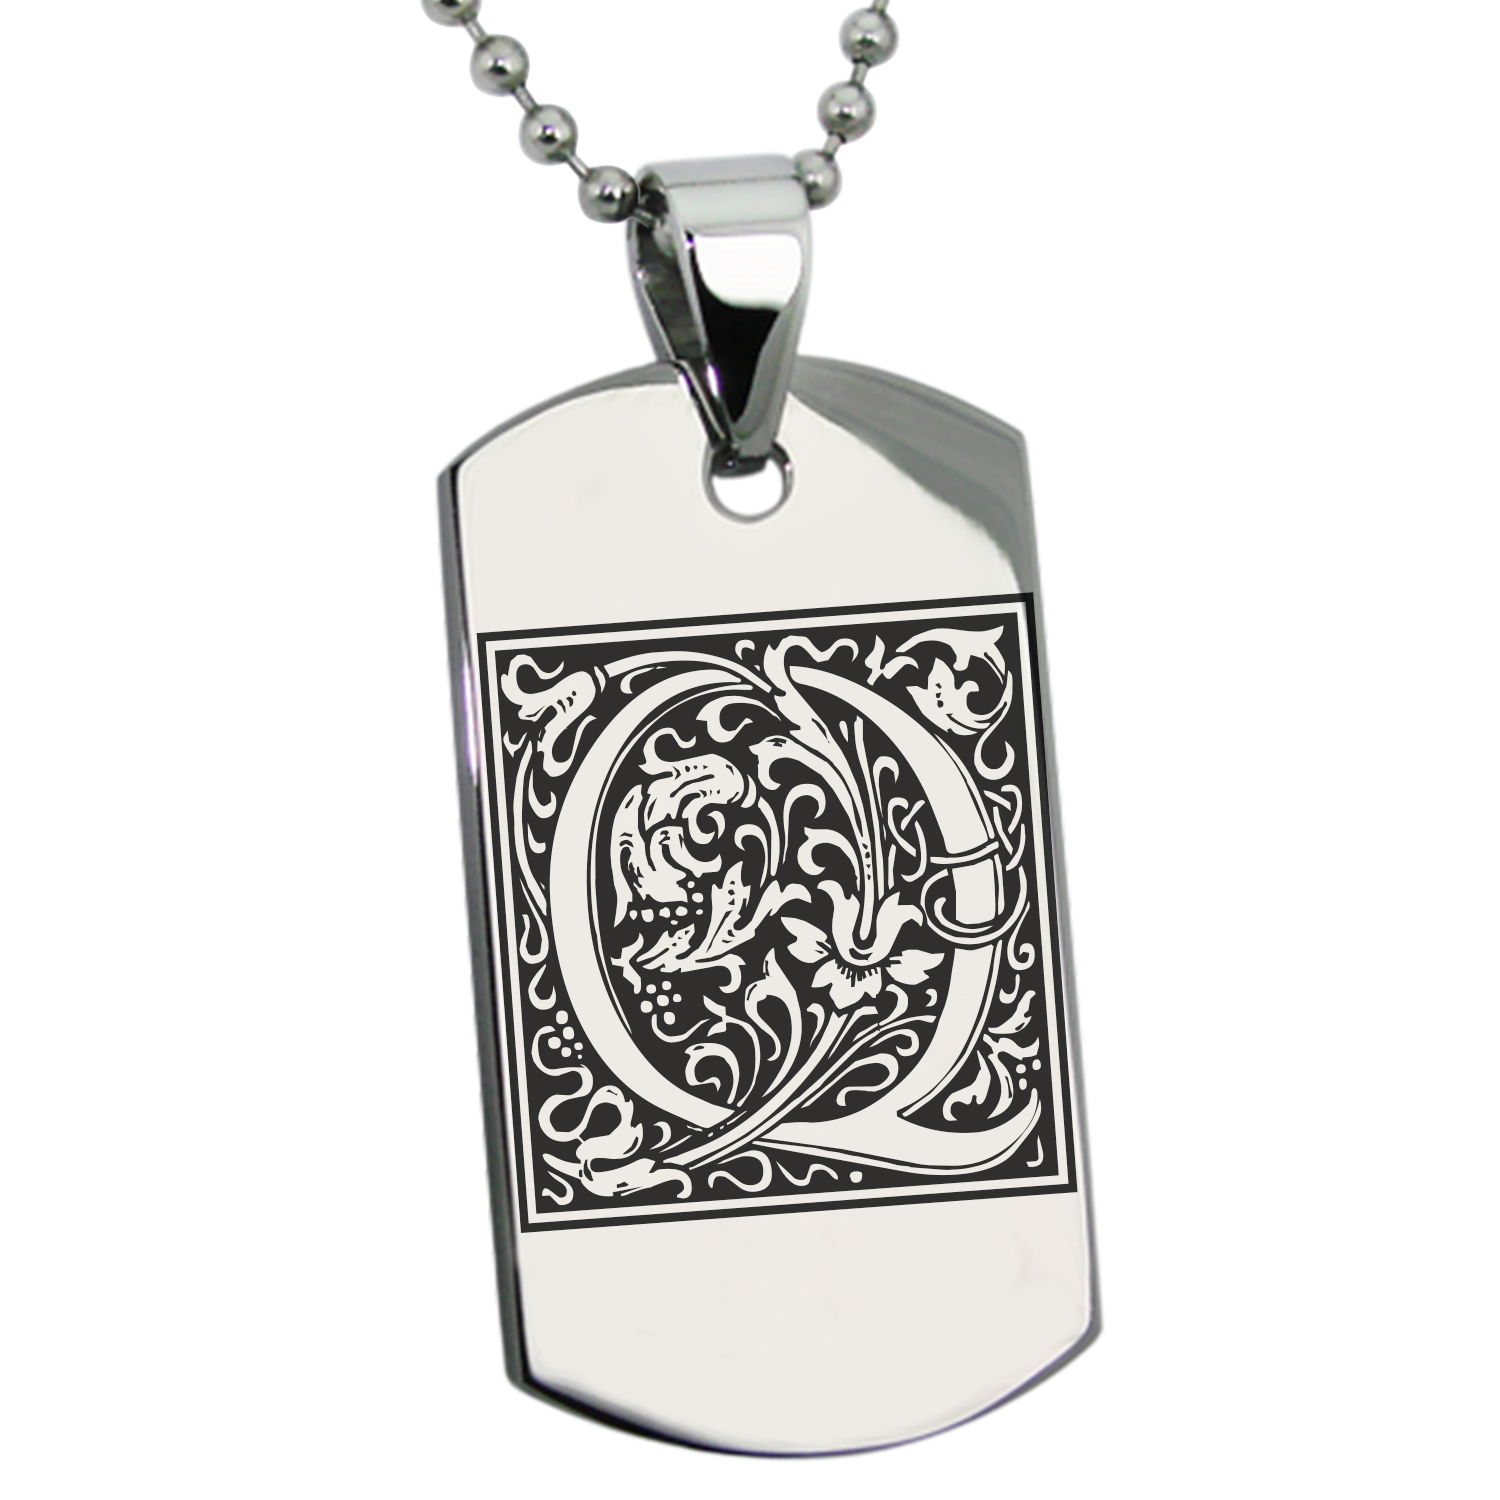 Stainless Steel Letter Q Initial Floral Monogram Engraved Dog Tag Pendant